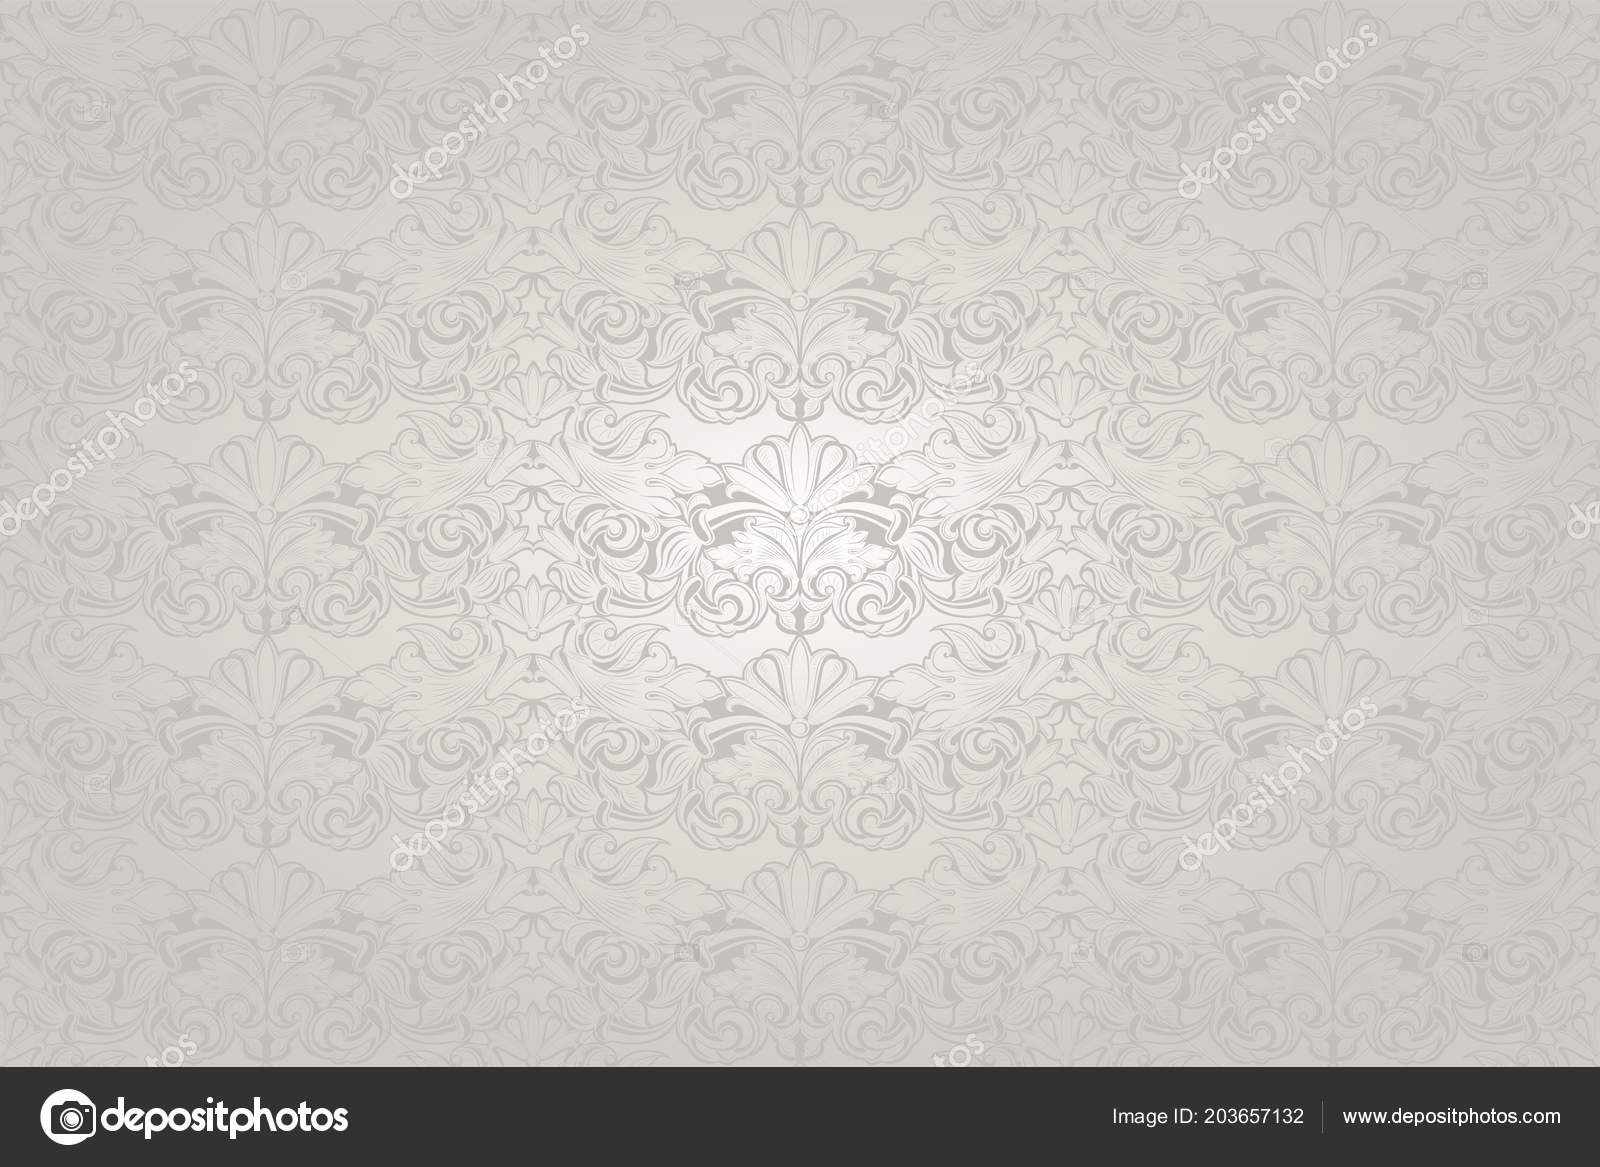 white wedding background pearl shine royal vintage classic baroque pattern stock vector c xennya 203657132 depositphotos